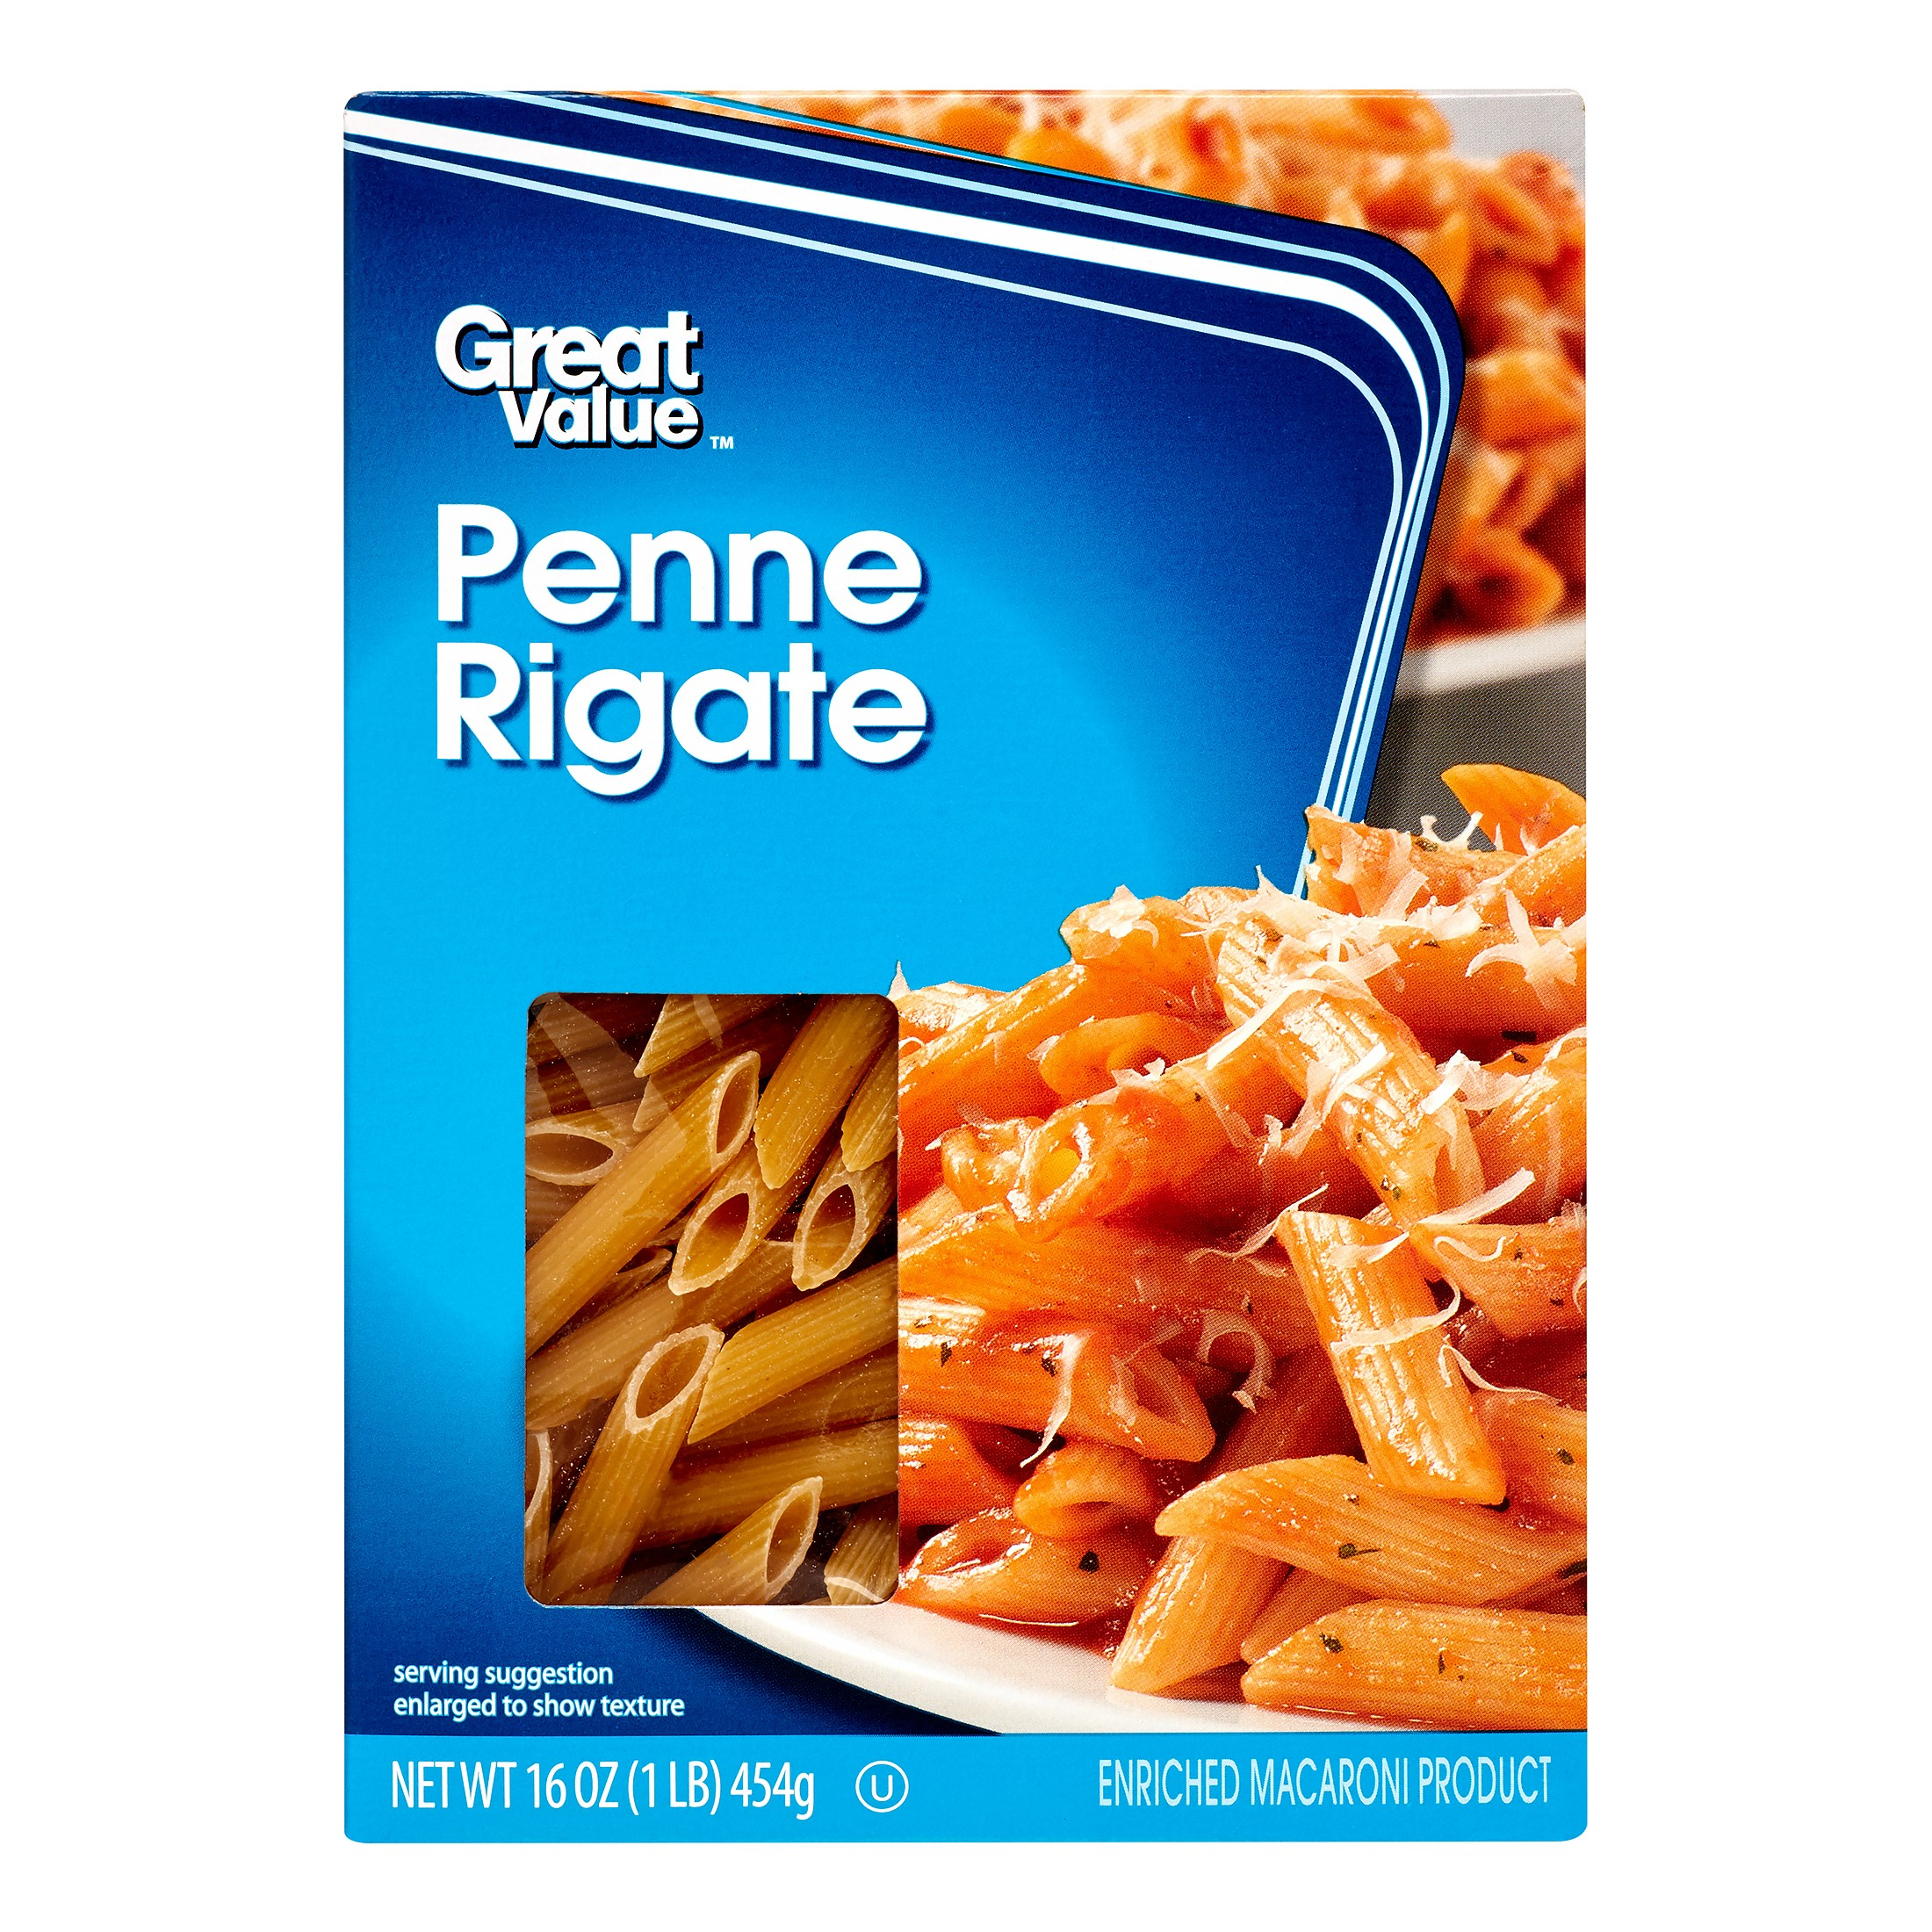 (6 Pack) Great Value Penne Rigate, 16 oz